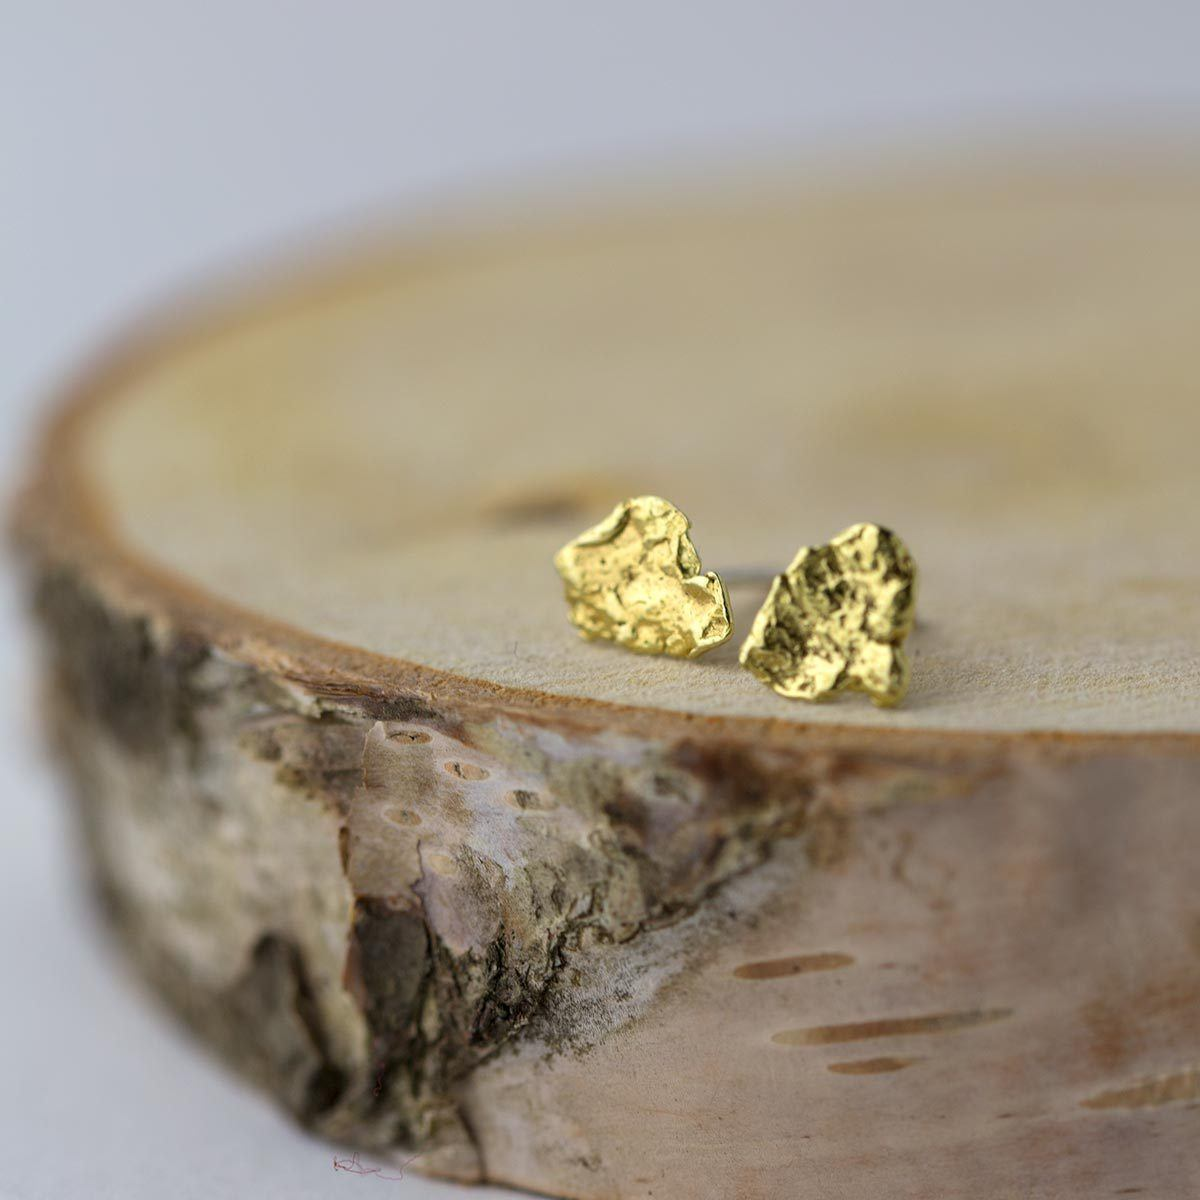 Alaska Gold Nugget Flake Earrings - Handmade Jewelry by Burnish